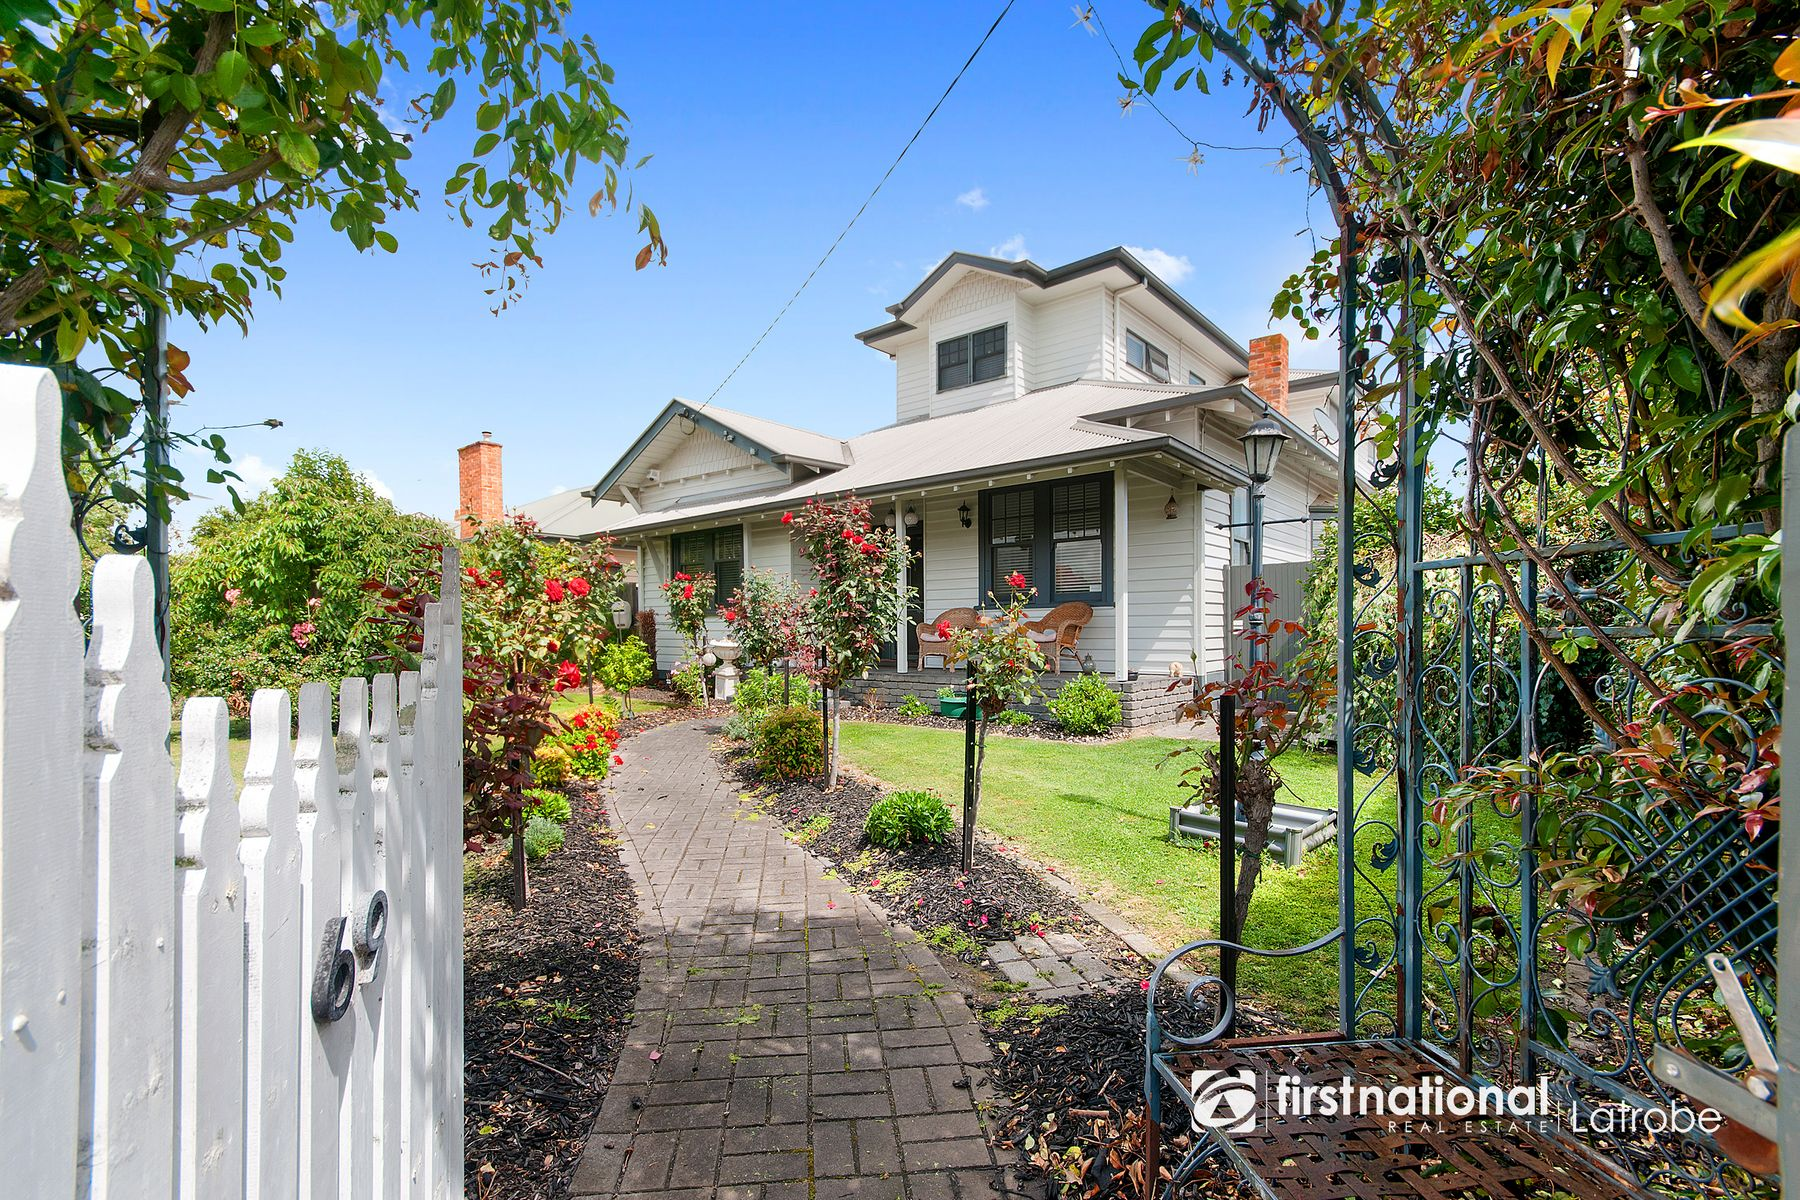 69 Breed Street, Traralgon, VIC 3844